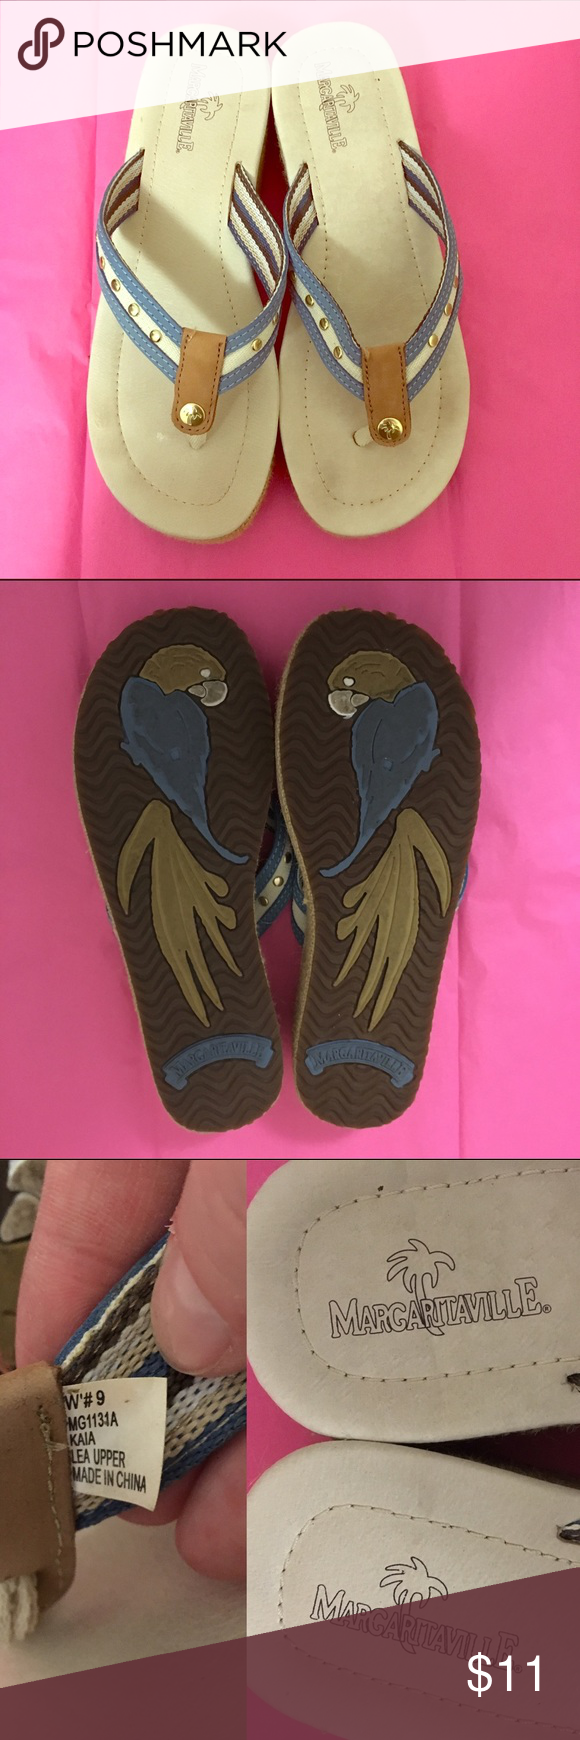 Euc 9 margaritaville flip flops Super cute! Margaritaville brand tan and blue flip flops with gold accents, Euc no flaws just some minor wear size 9 women's Margaritaville Shoes Sandals